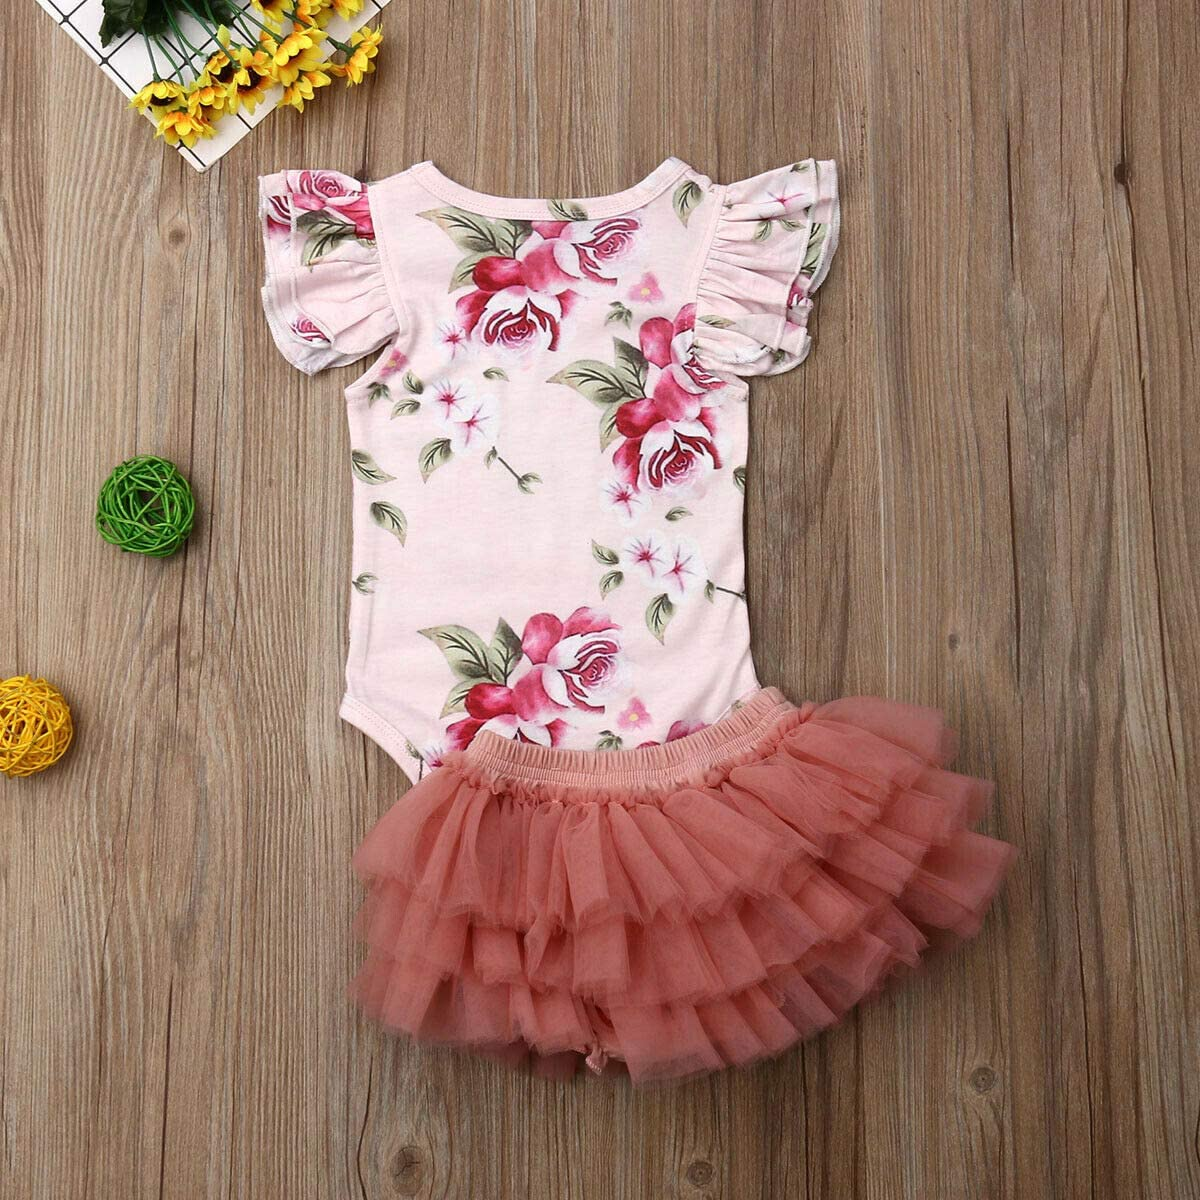 Newborn Baby Girls Two Piece Floral Ruffle Sleeve Romper Tops and Tutu Skirts Set Girls Summer Outfits Set